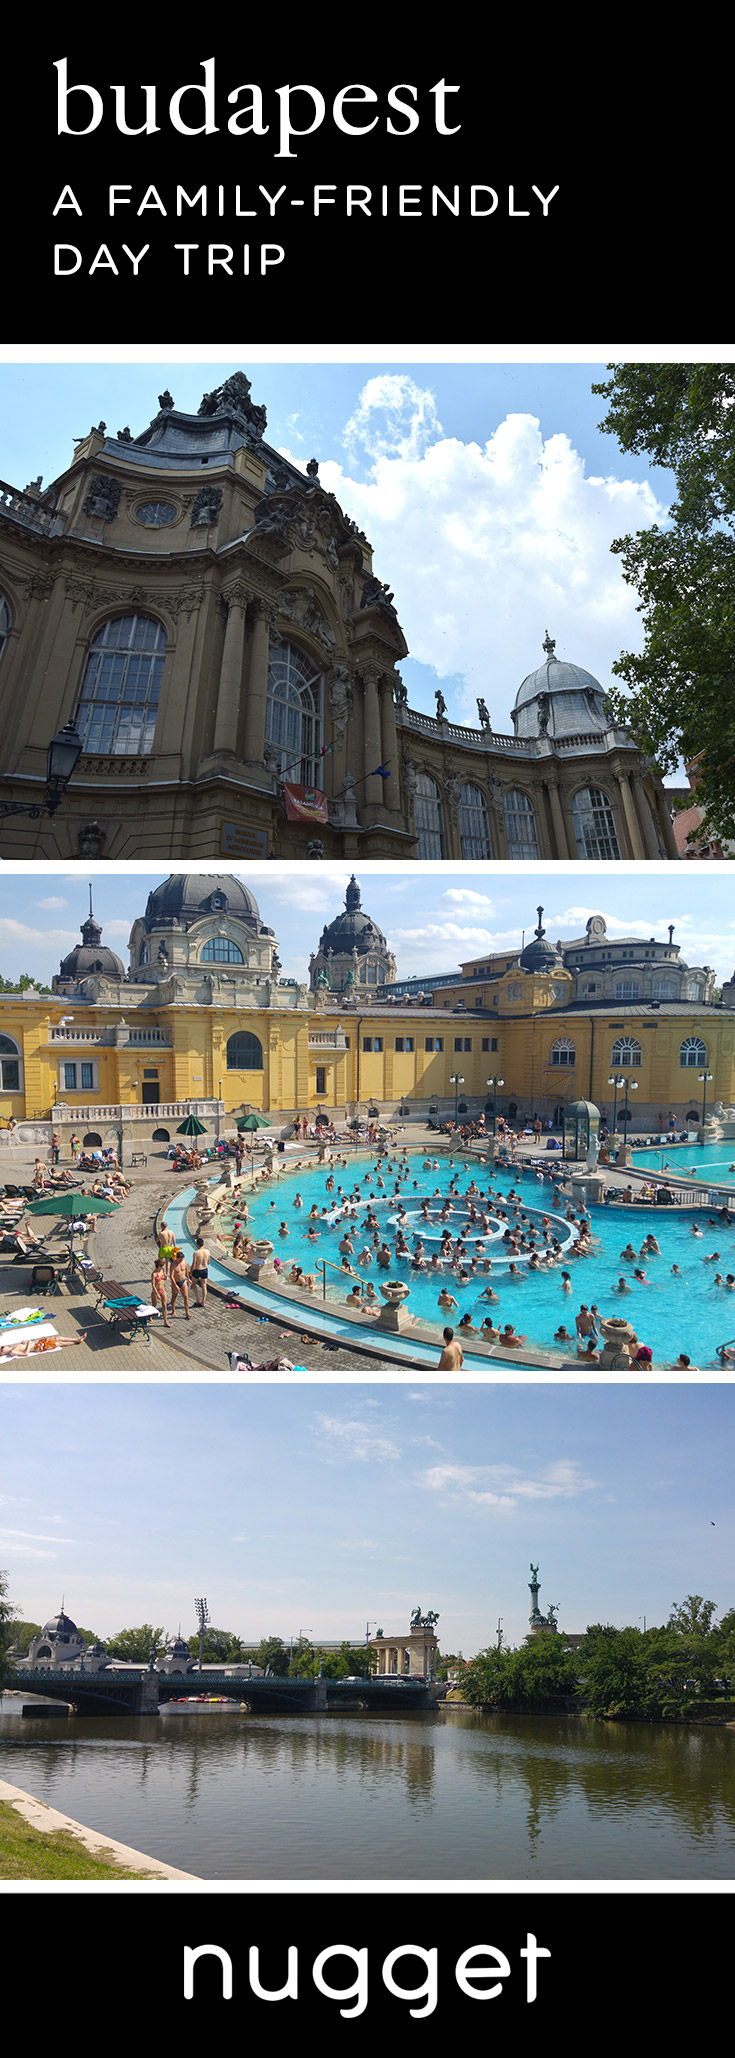 Budapest Adventure: Playgrounds, Castles and Szechenyi Baths